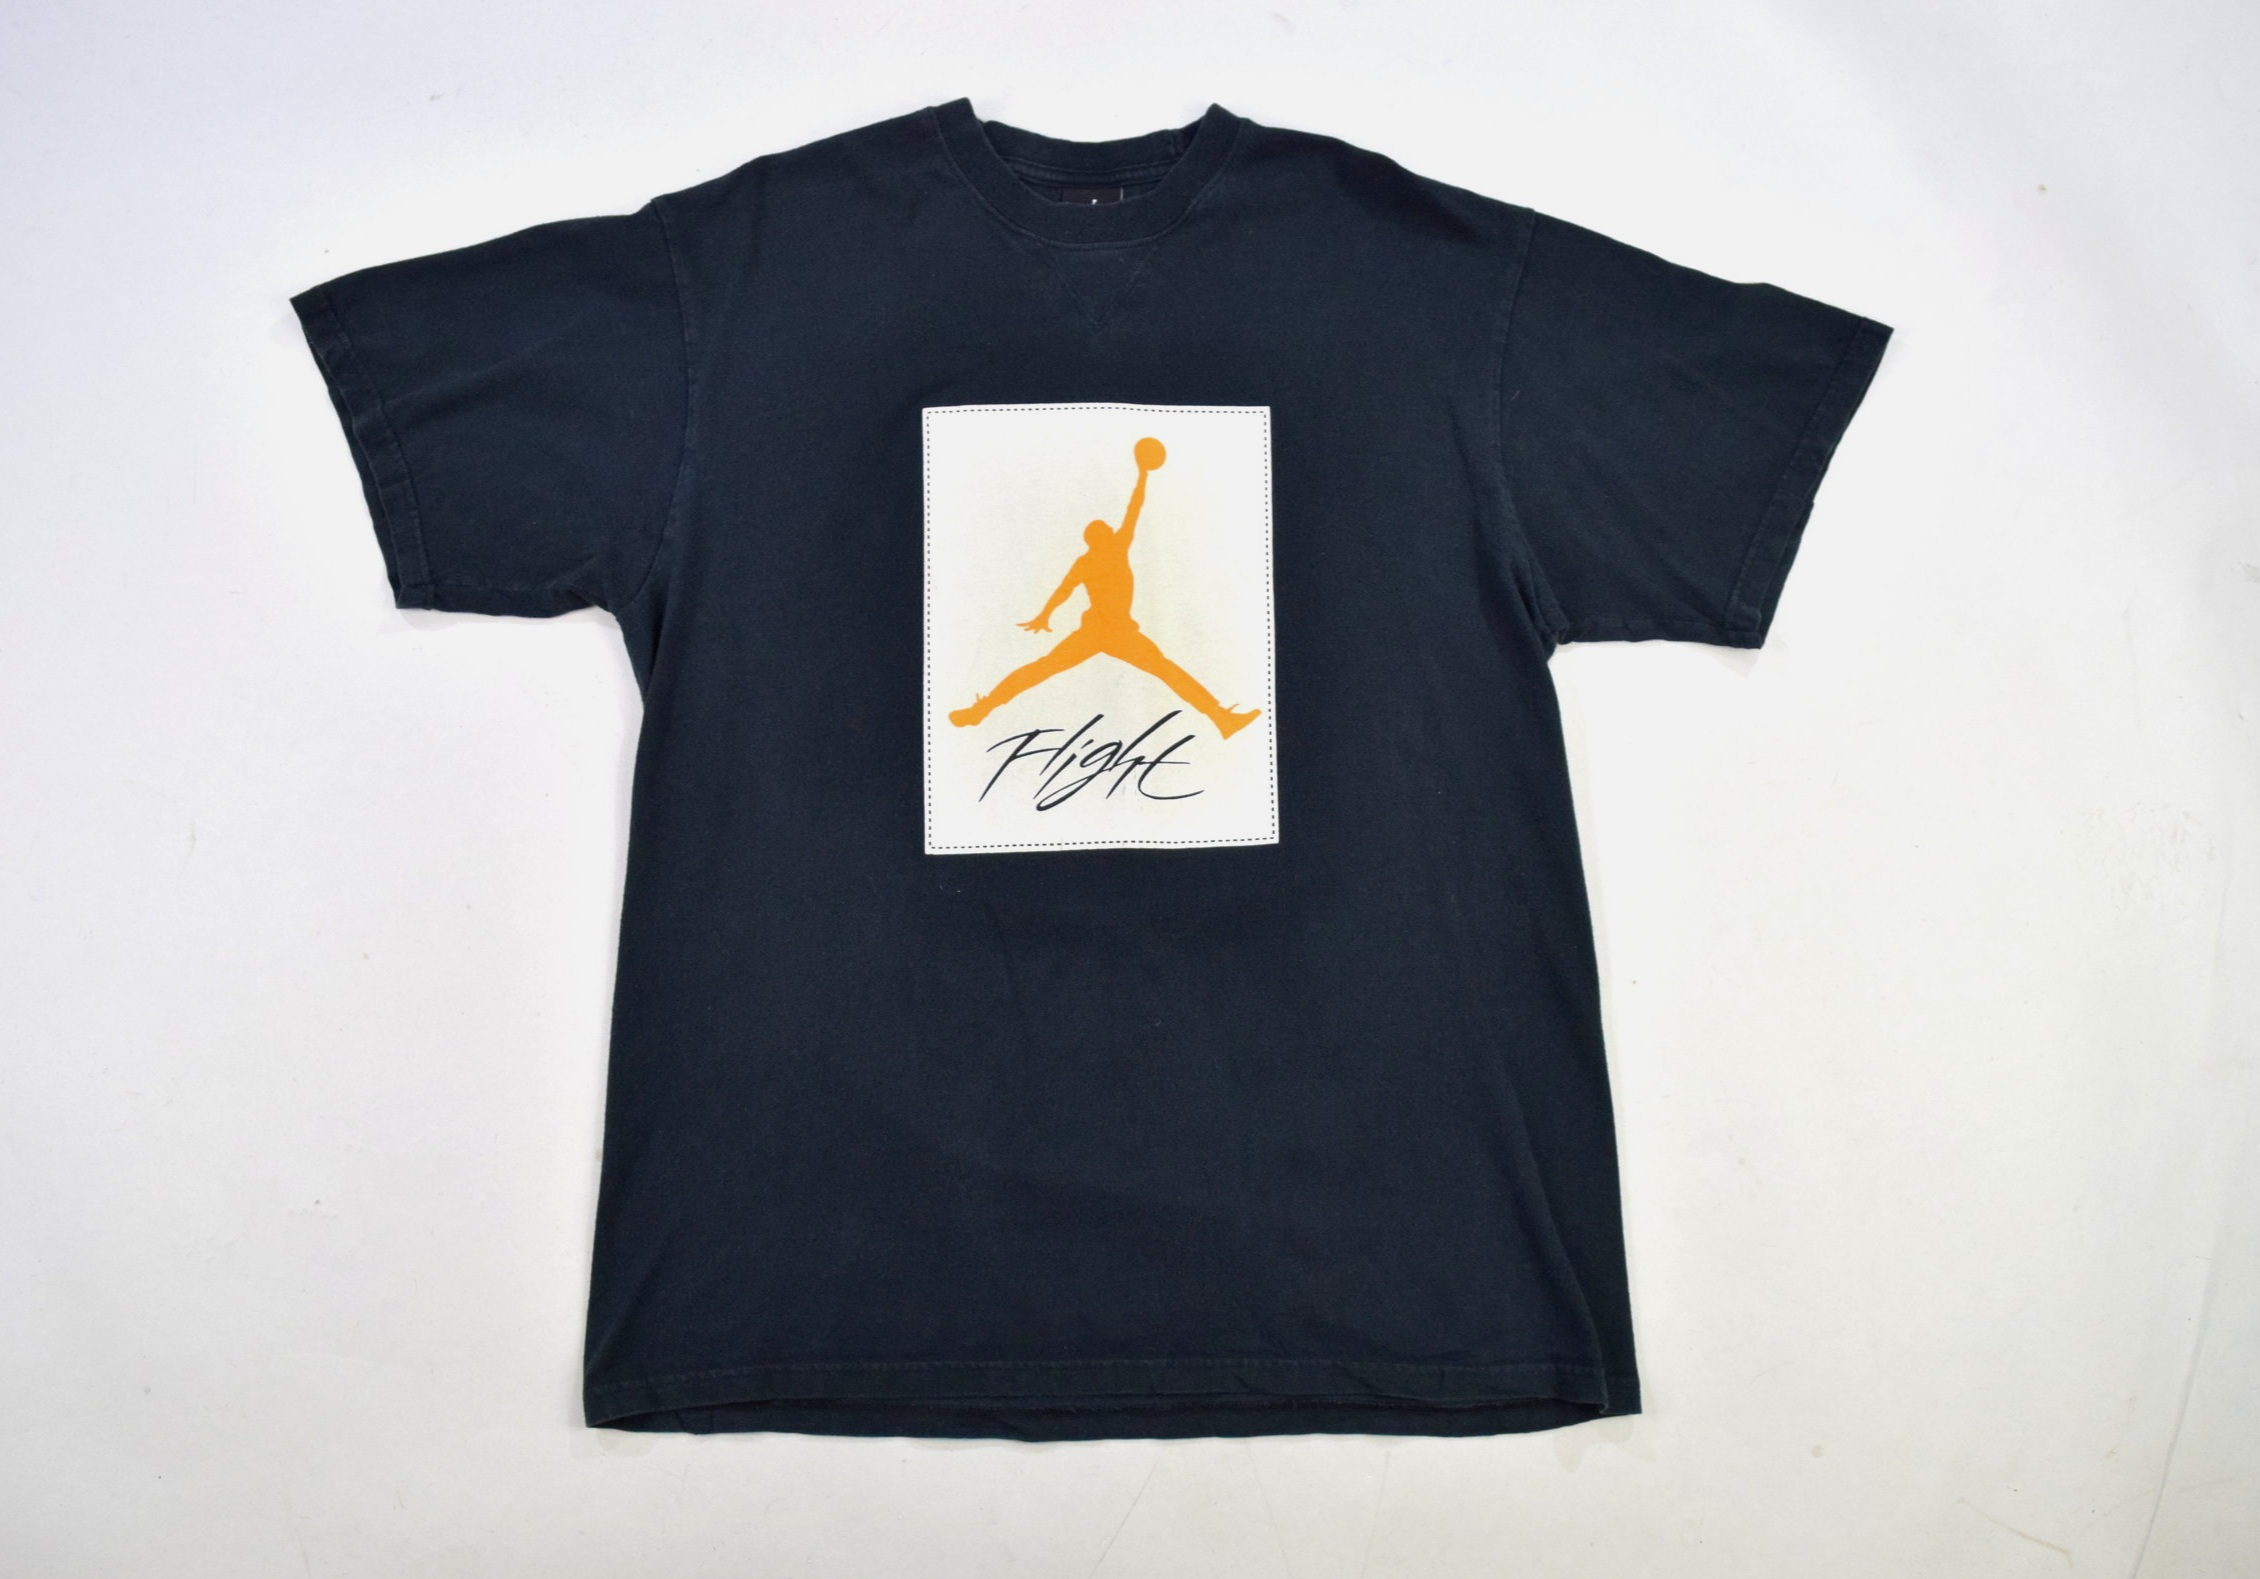 85229ae41a28 Black Air Jordan  Flight  Crew Neck T Shirt — Headlock Vintage